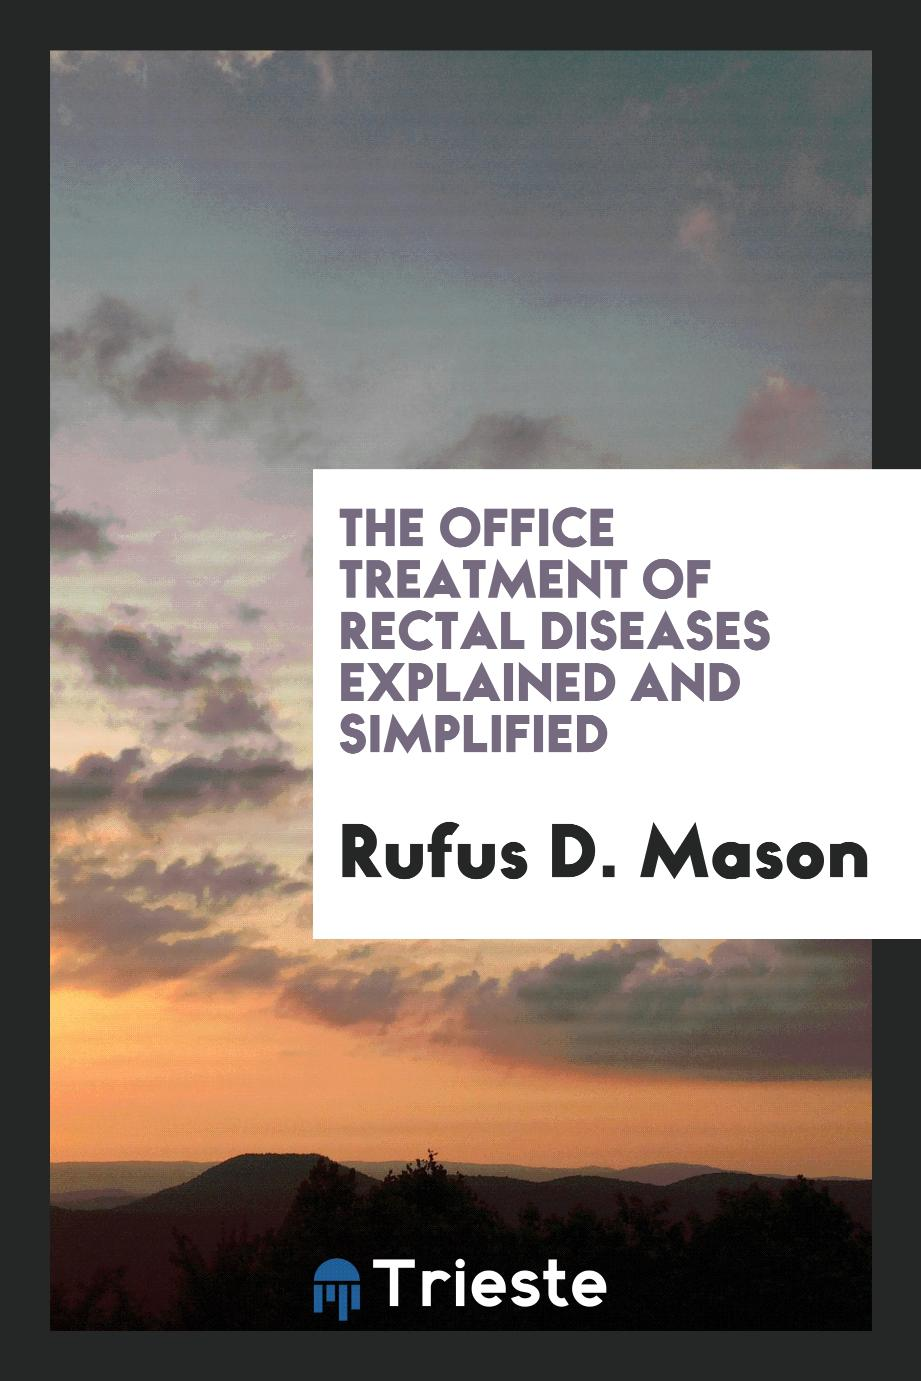 Rufus D. Mason - The Office Treatment of Rectal Diseases Explained and Simplified